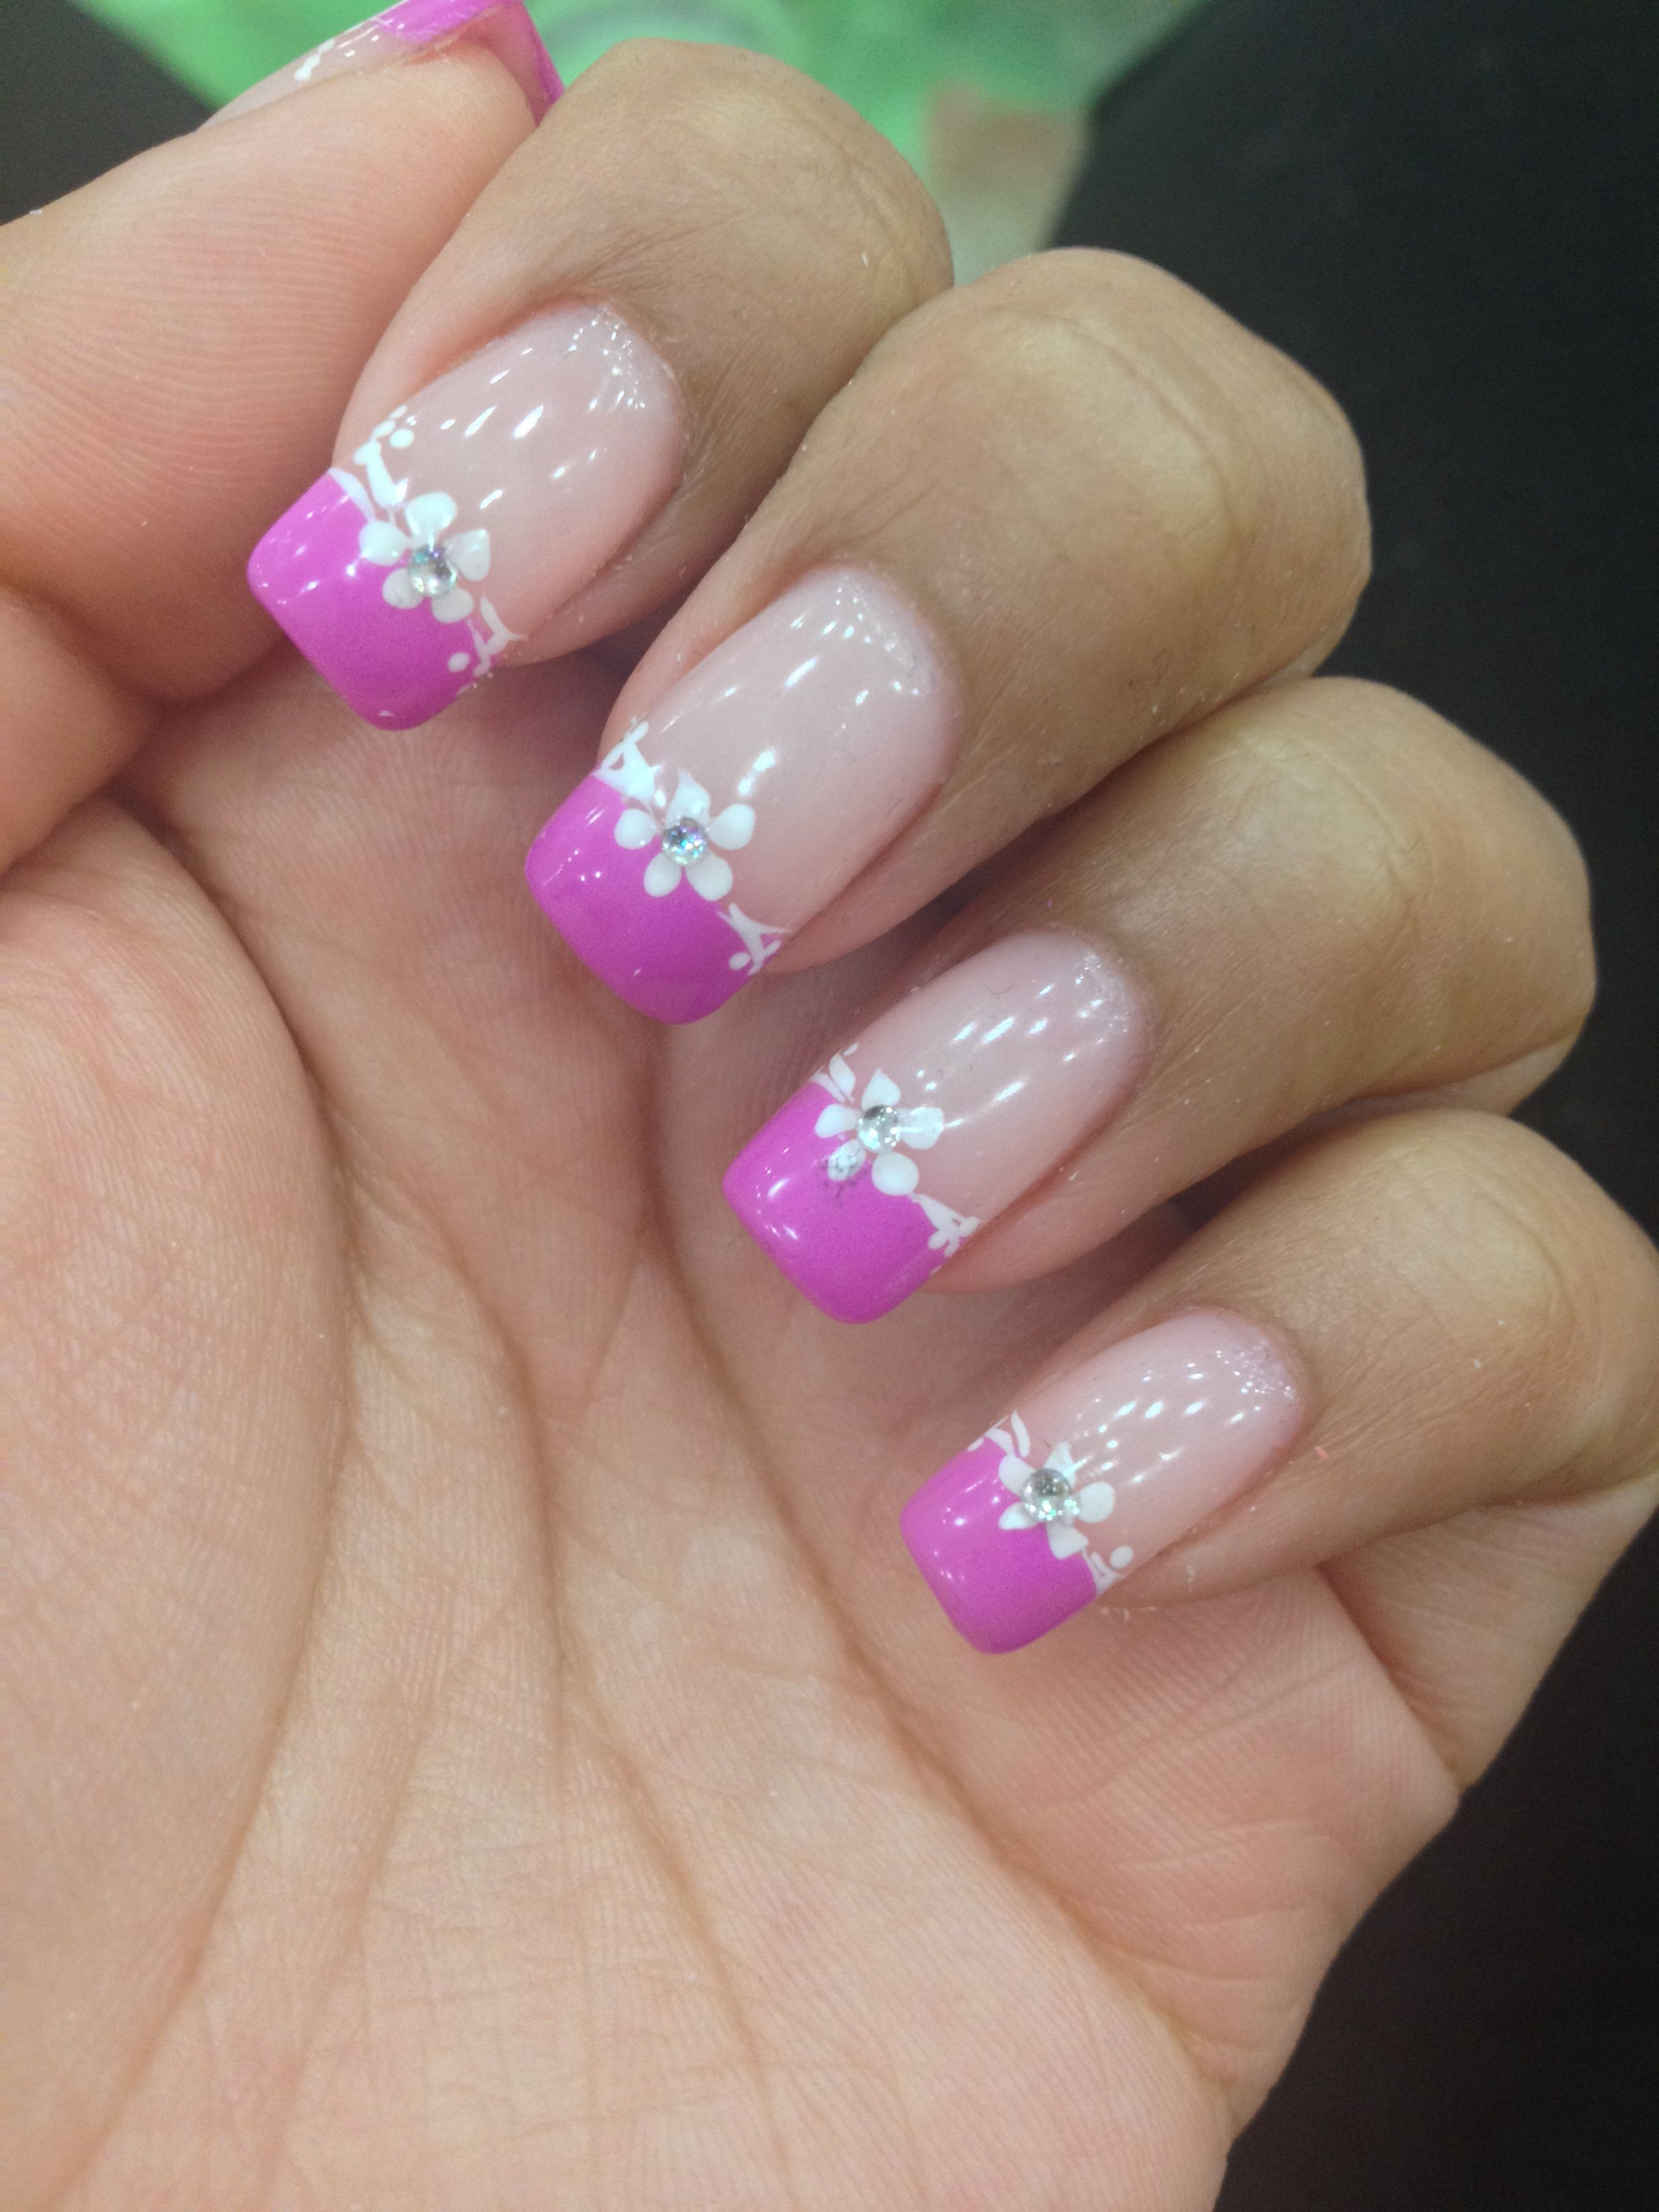 Pink French tip nails with design | nails | Pinterest | Spring nails ...